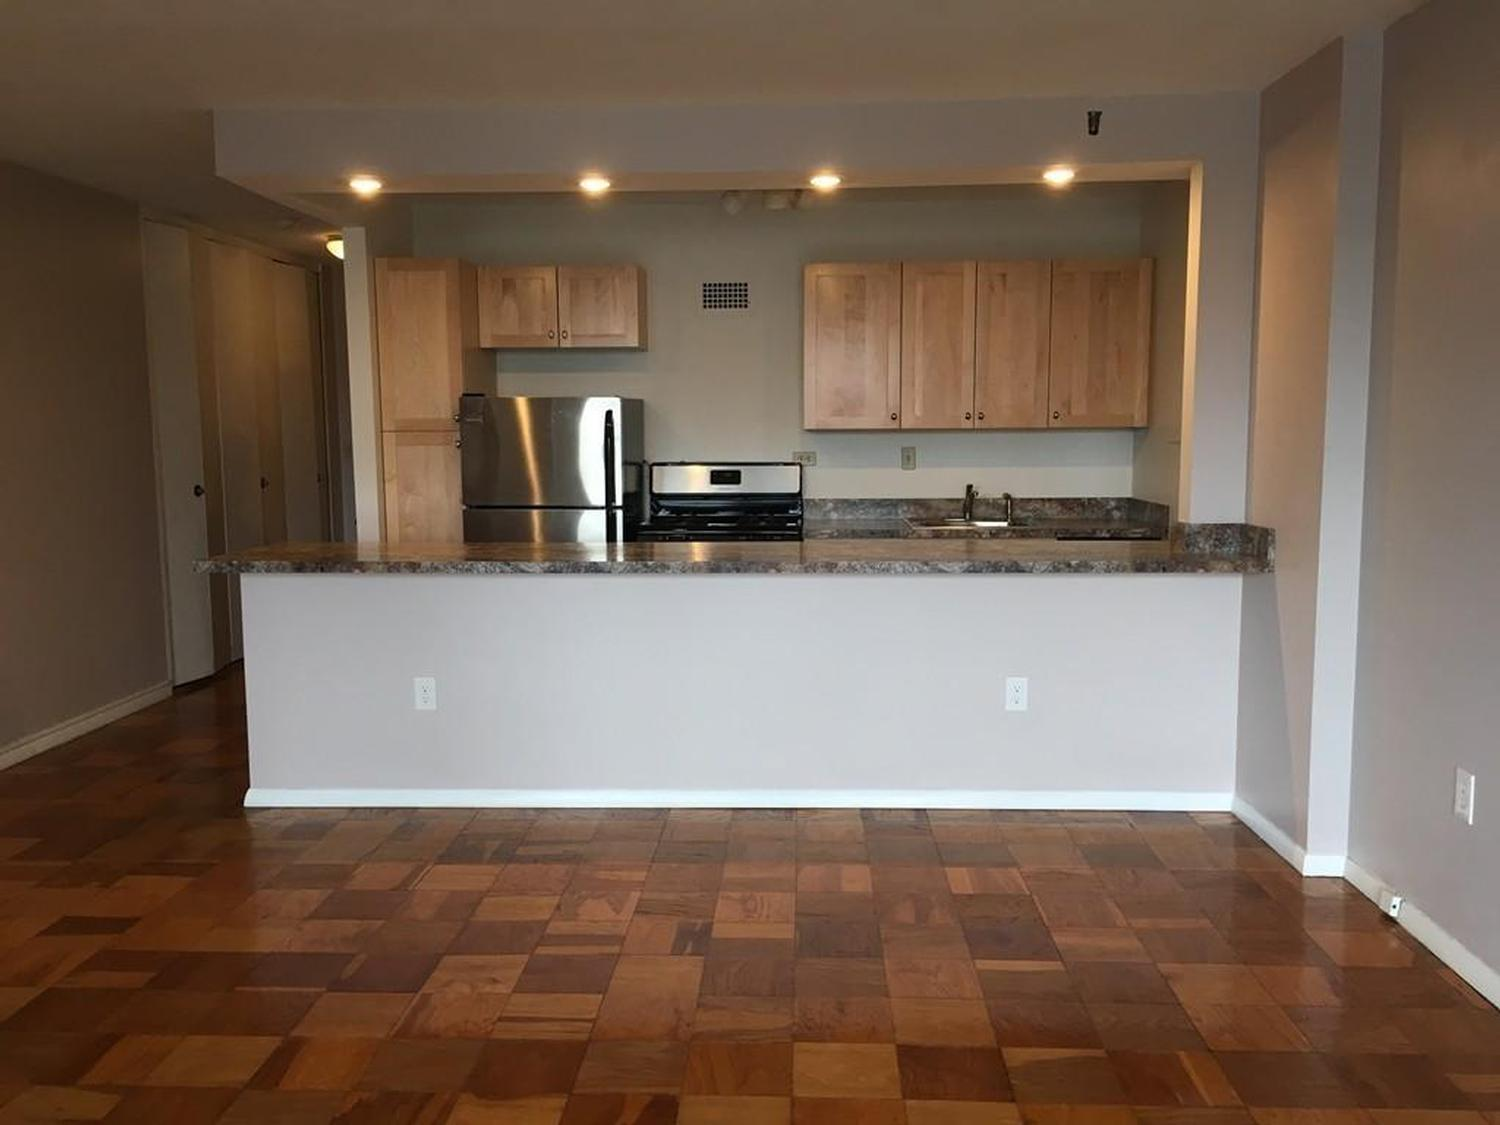 Photo of 6 Whittier Place Boston - West End, MA 02114